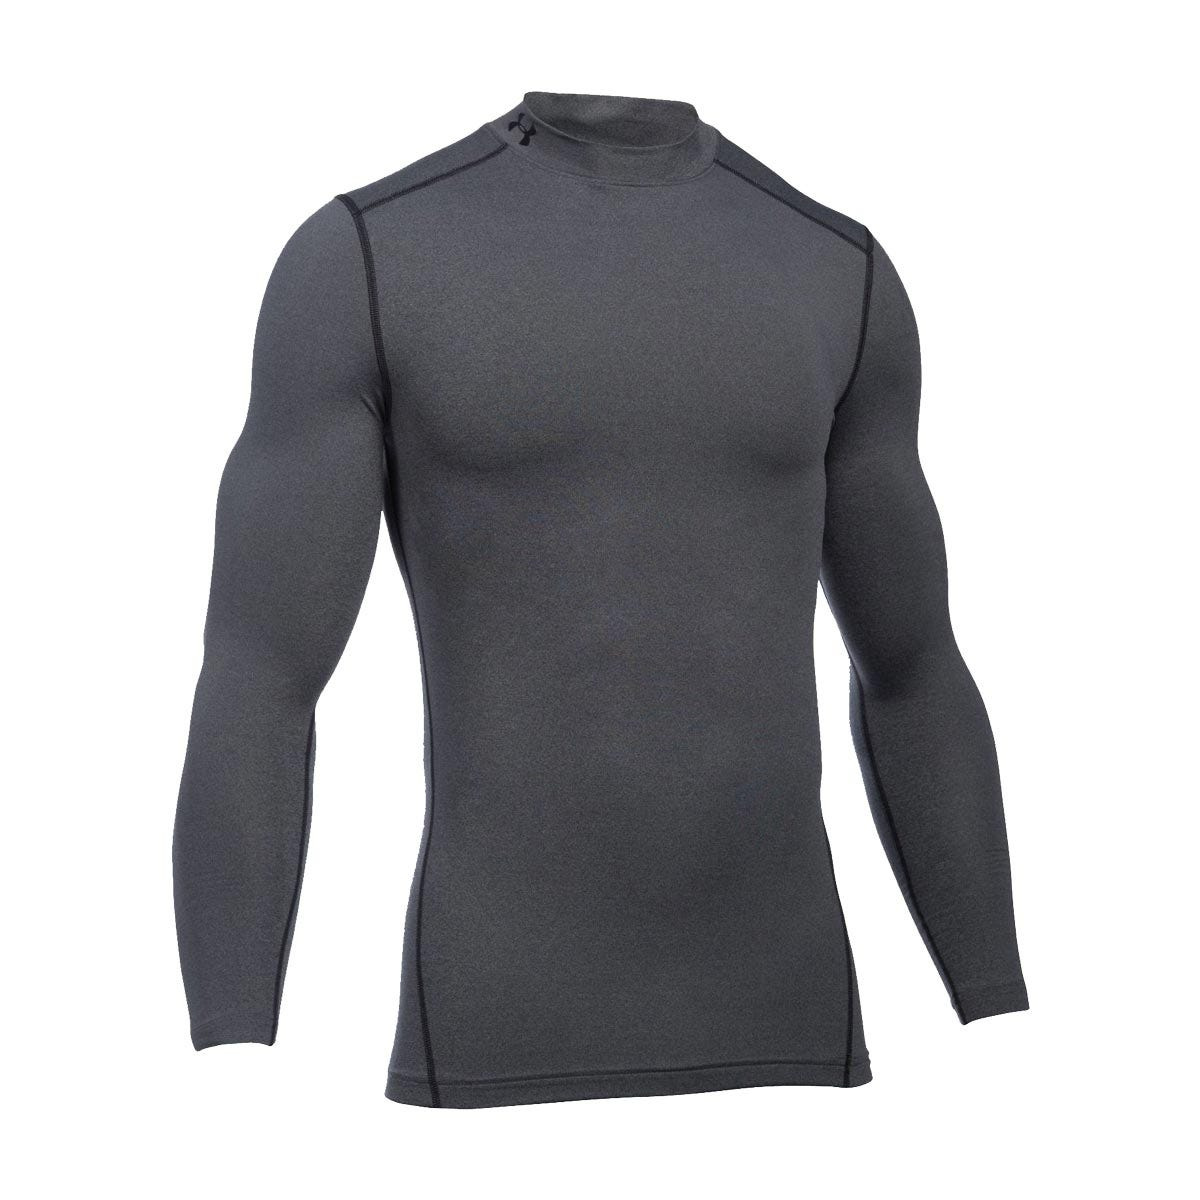 Under Armour ColdGear Men's Compression Long Sleeve Mock